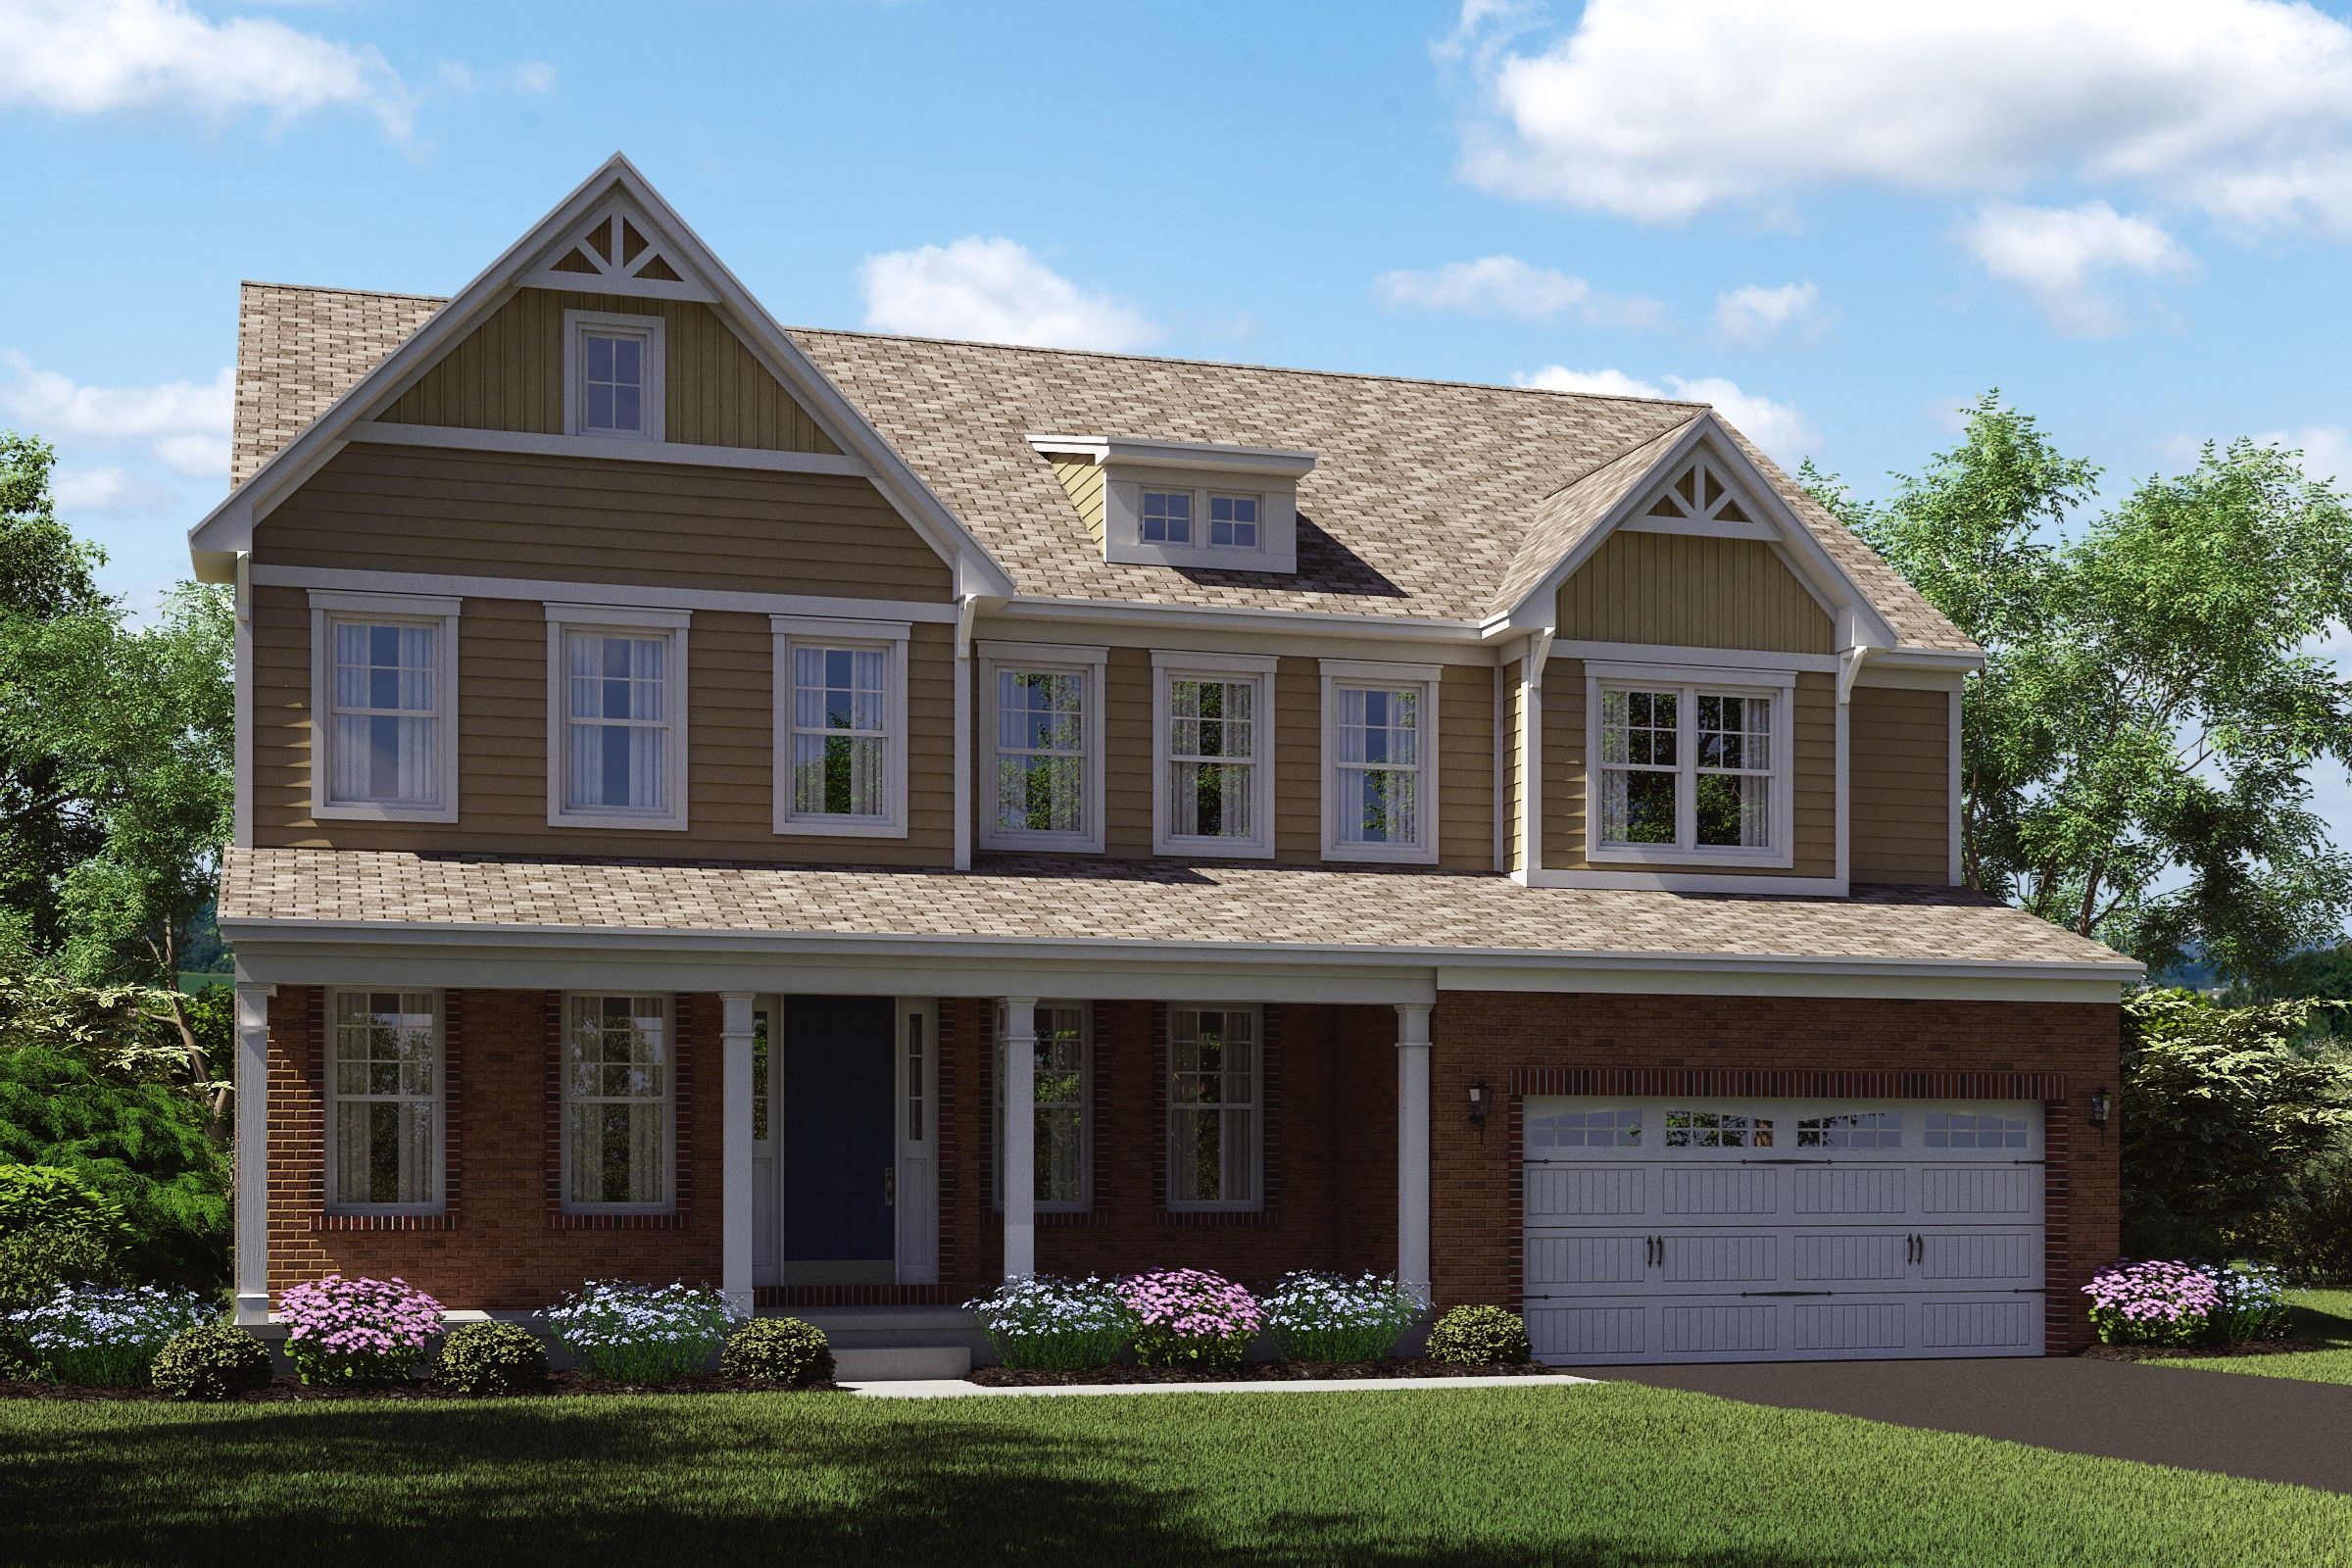 424 Asher's Farm, Homesite 23, Annapolis, MD Homes & Land - Real Estate